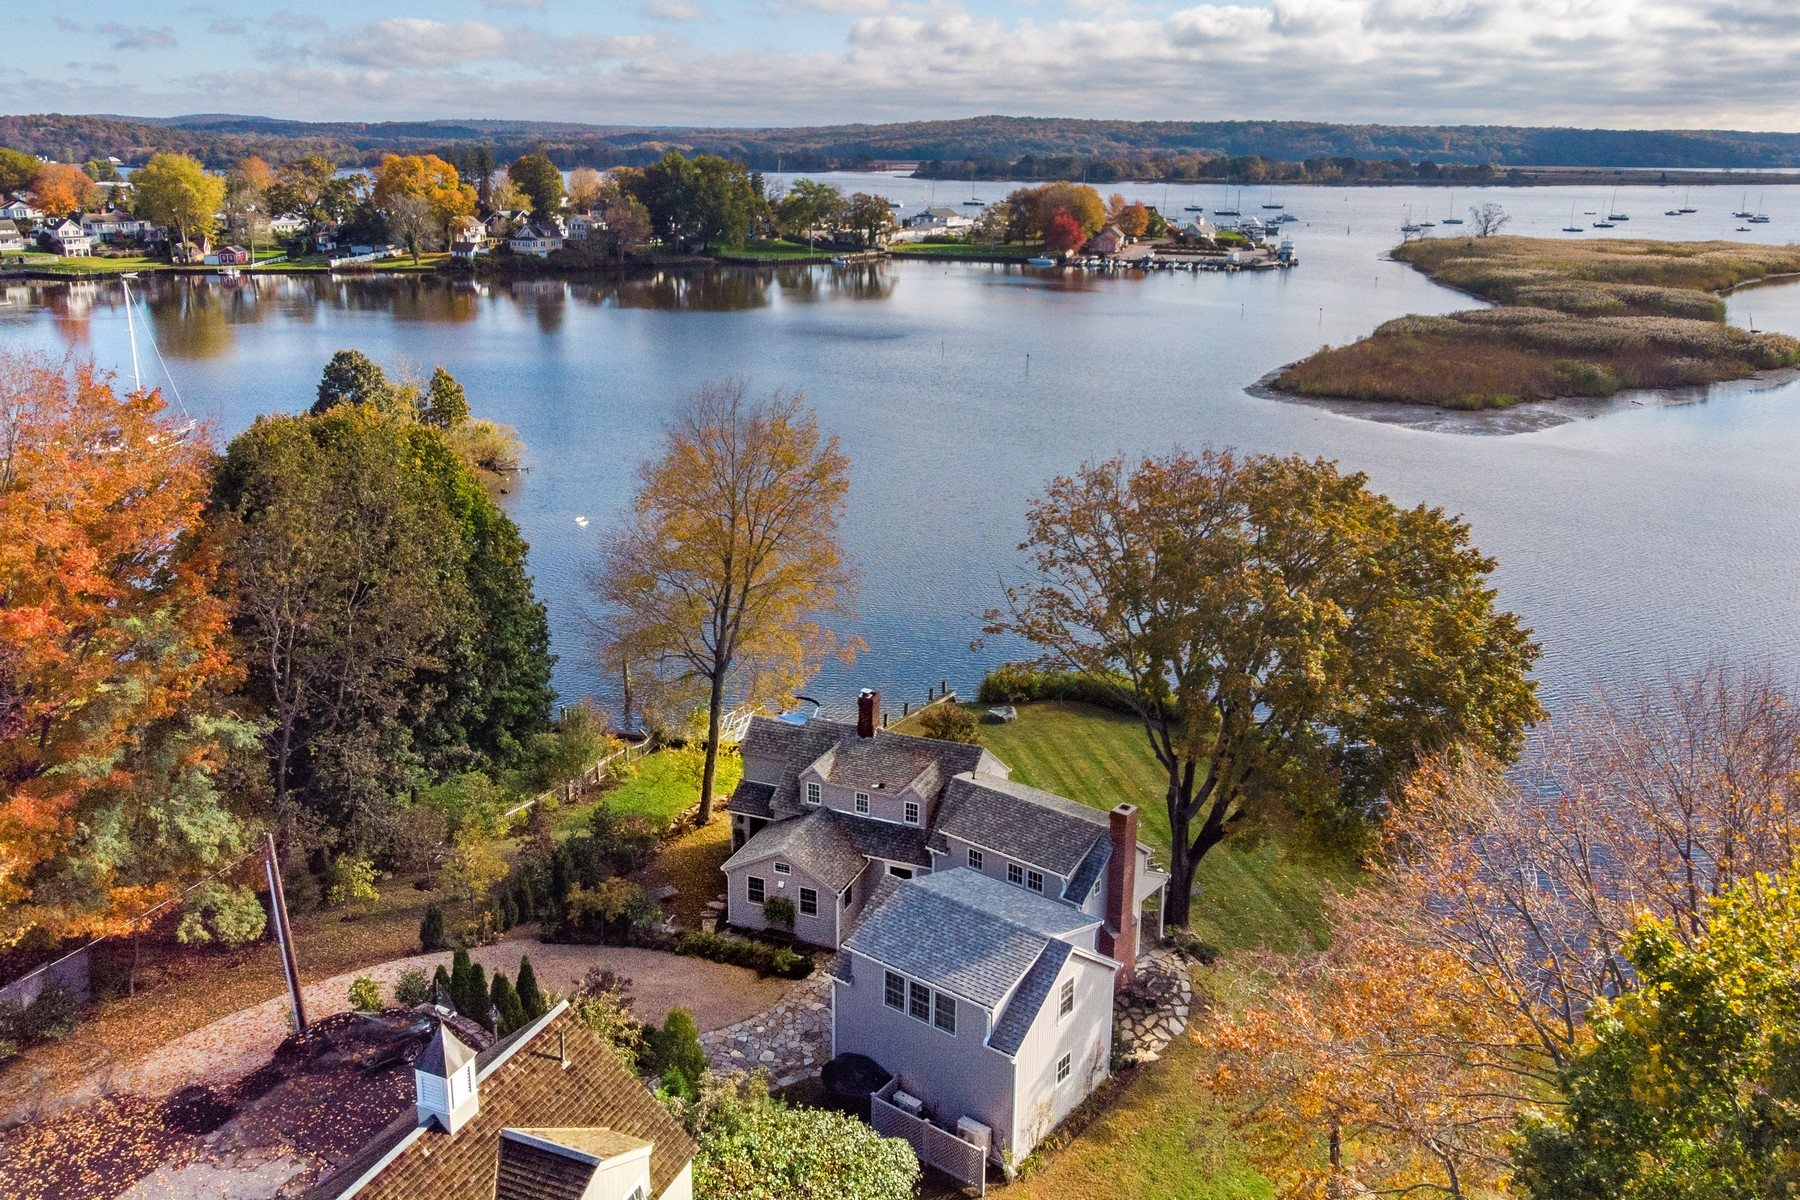 Single Family Homes for Sale at The Most Romantic Water Front Setting Imaginable 36 Mack Lane Essex, Connecticut 06426 United States